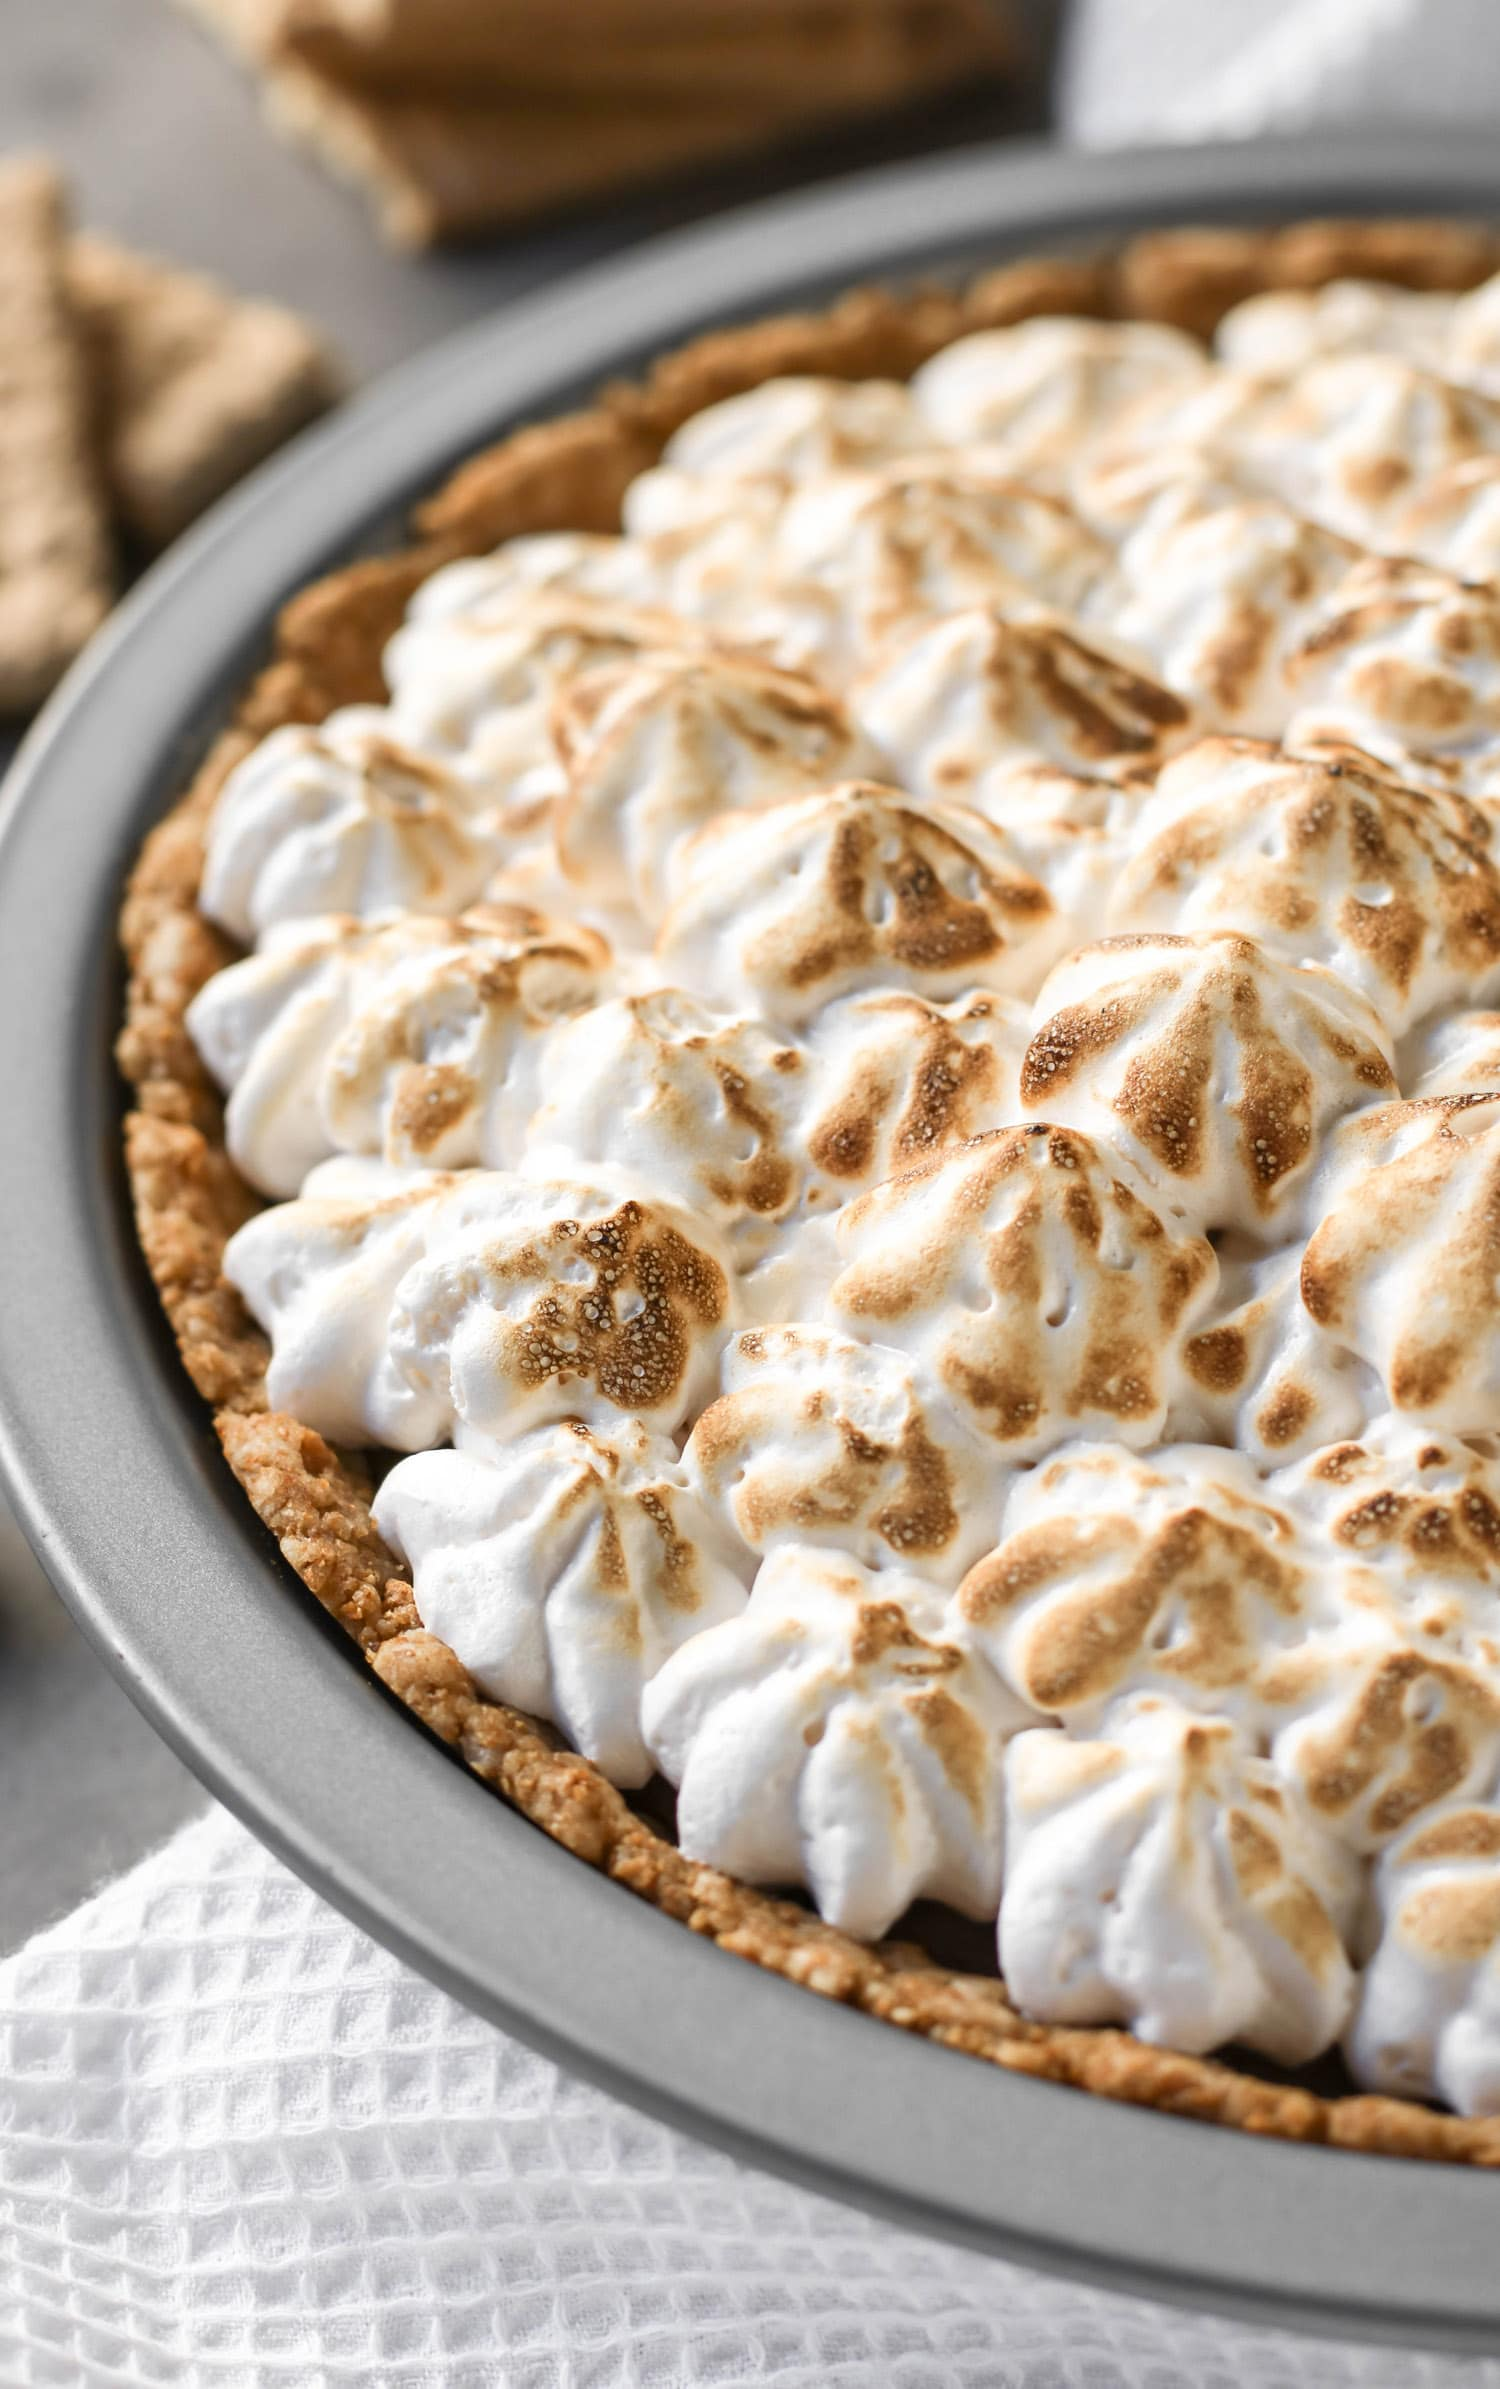 This decadent S'mores Pie has a deliciously comforting graham cracker crust, a rich and creamy chocolate filling, and a homemade marshmallow fluff topping. And it's dairy free and low in sugar! Healthy Dessert Recipes at the Desserts With Benefits Blog